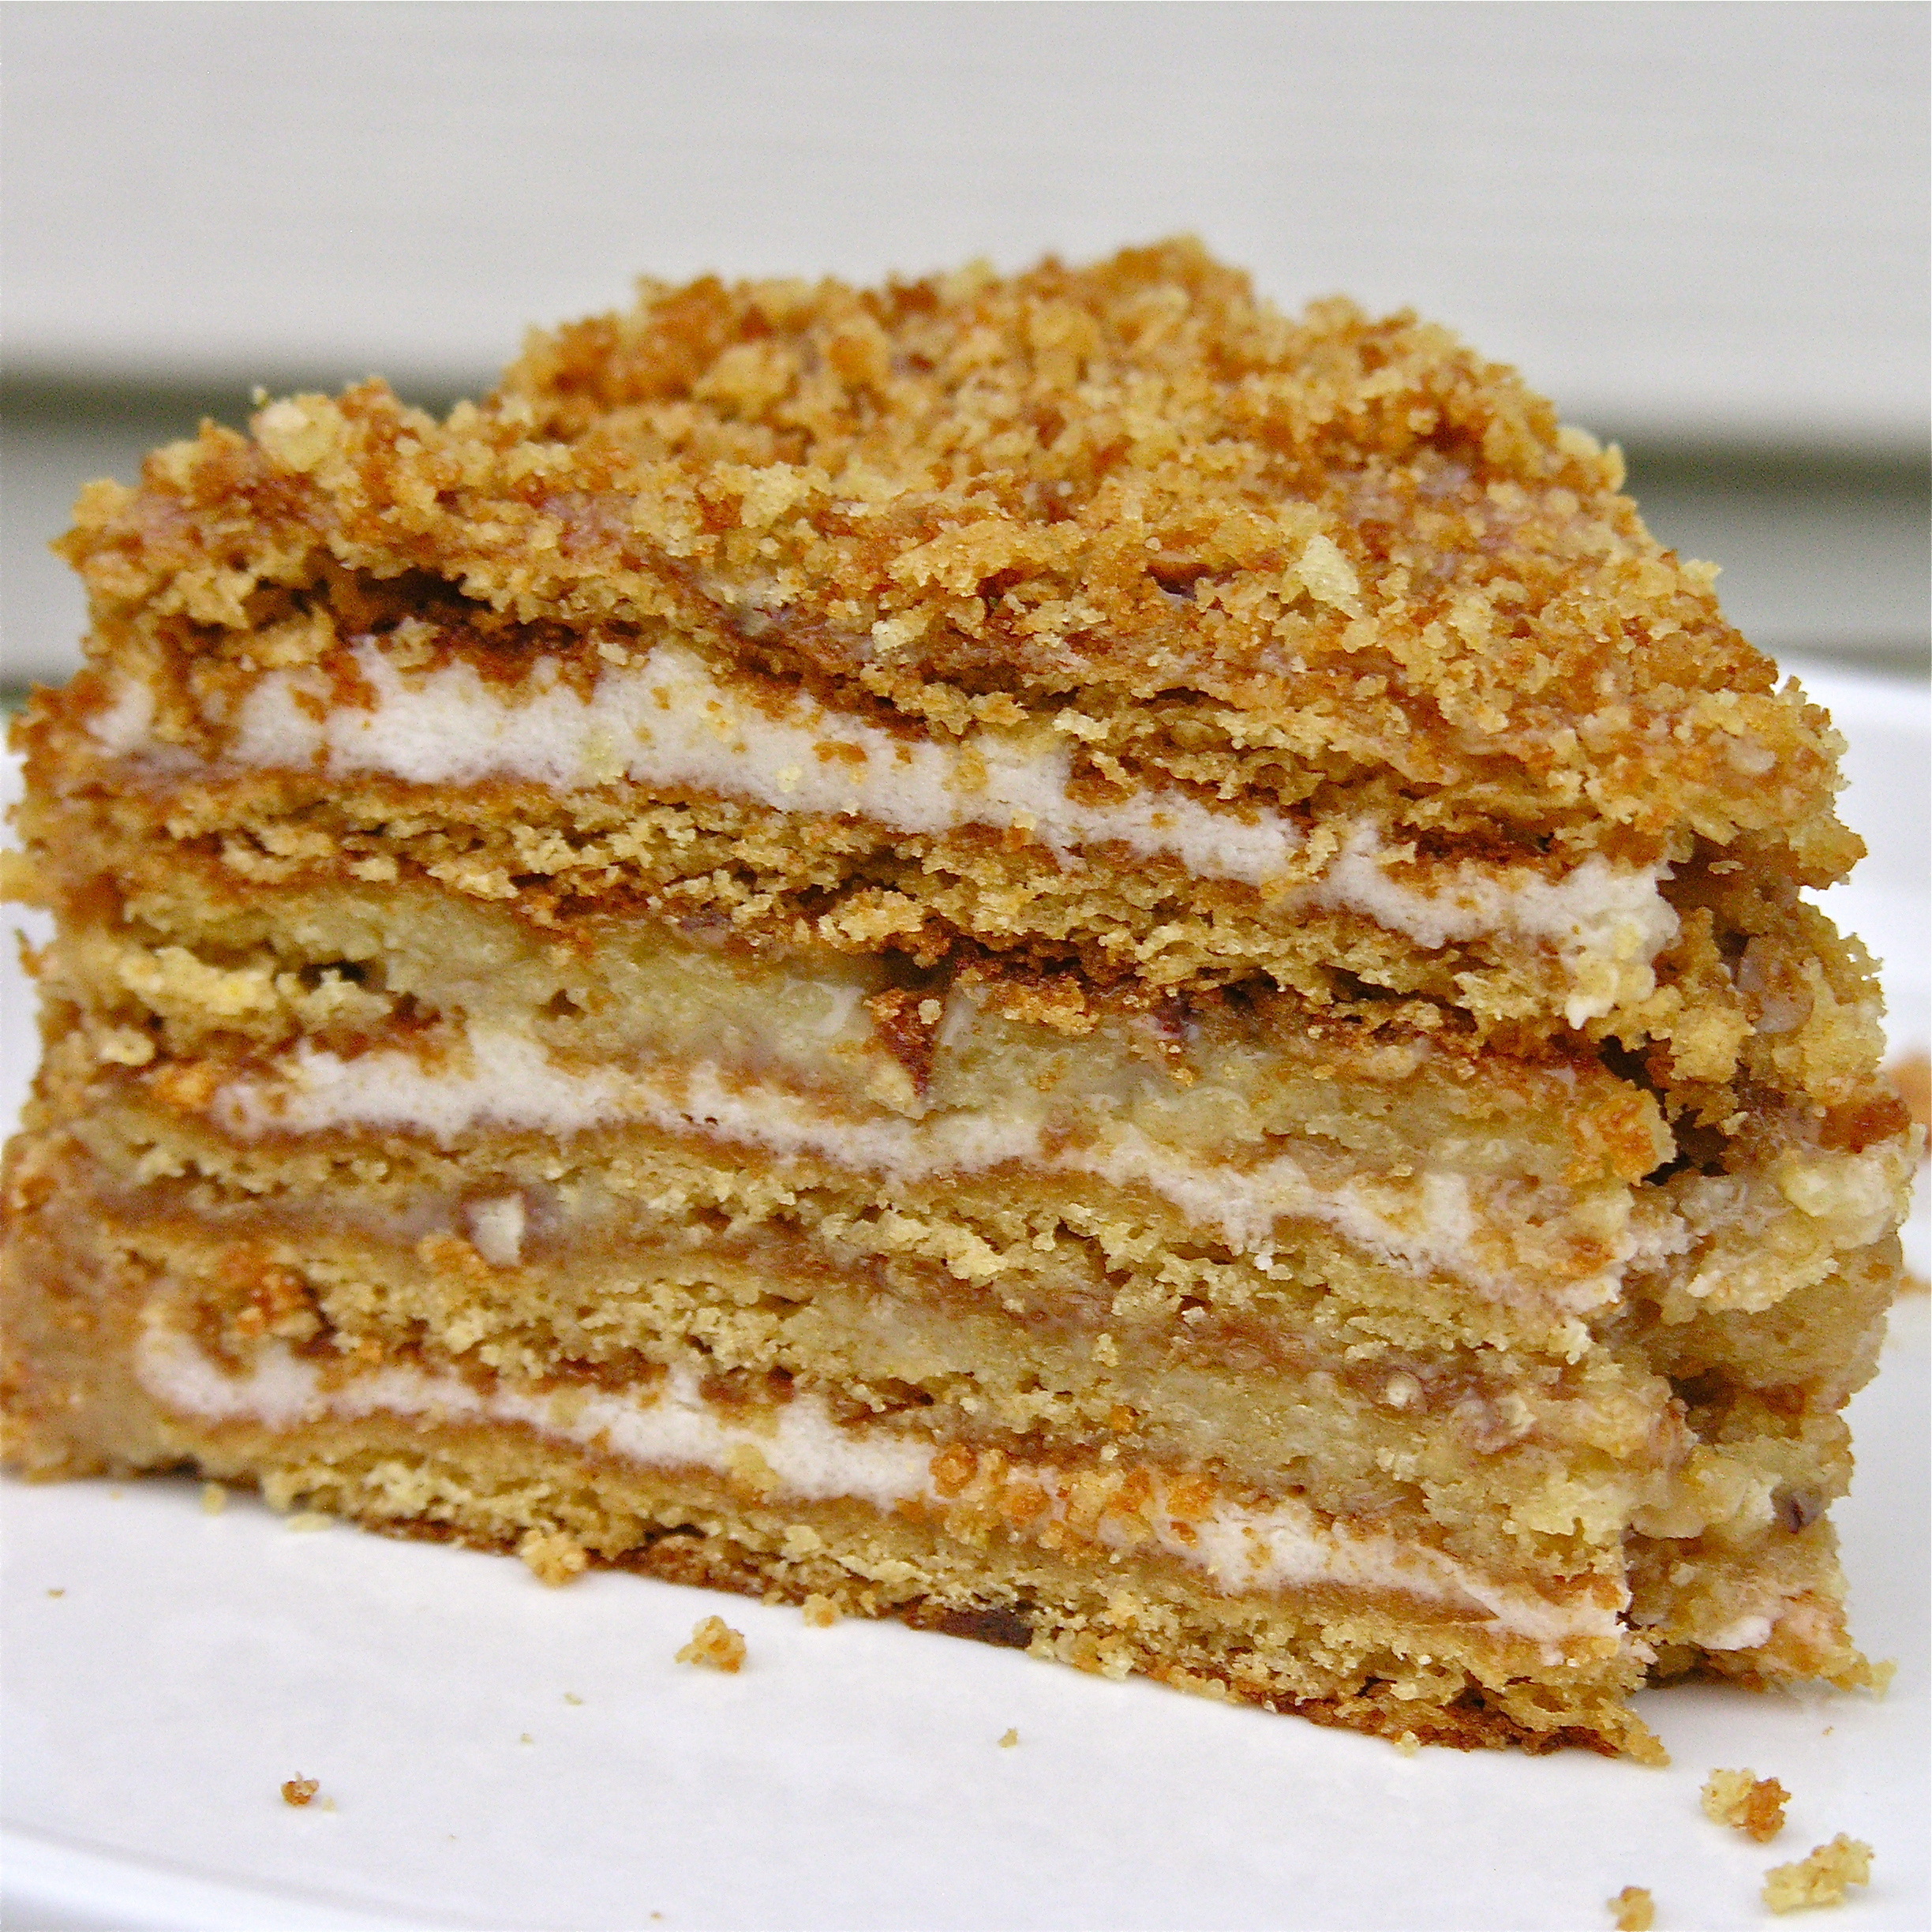 Images Of Cake With Name Honey : Medovnik Honey Cake eASYbAKED